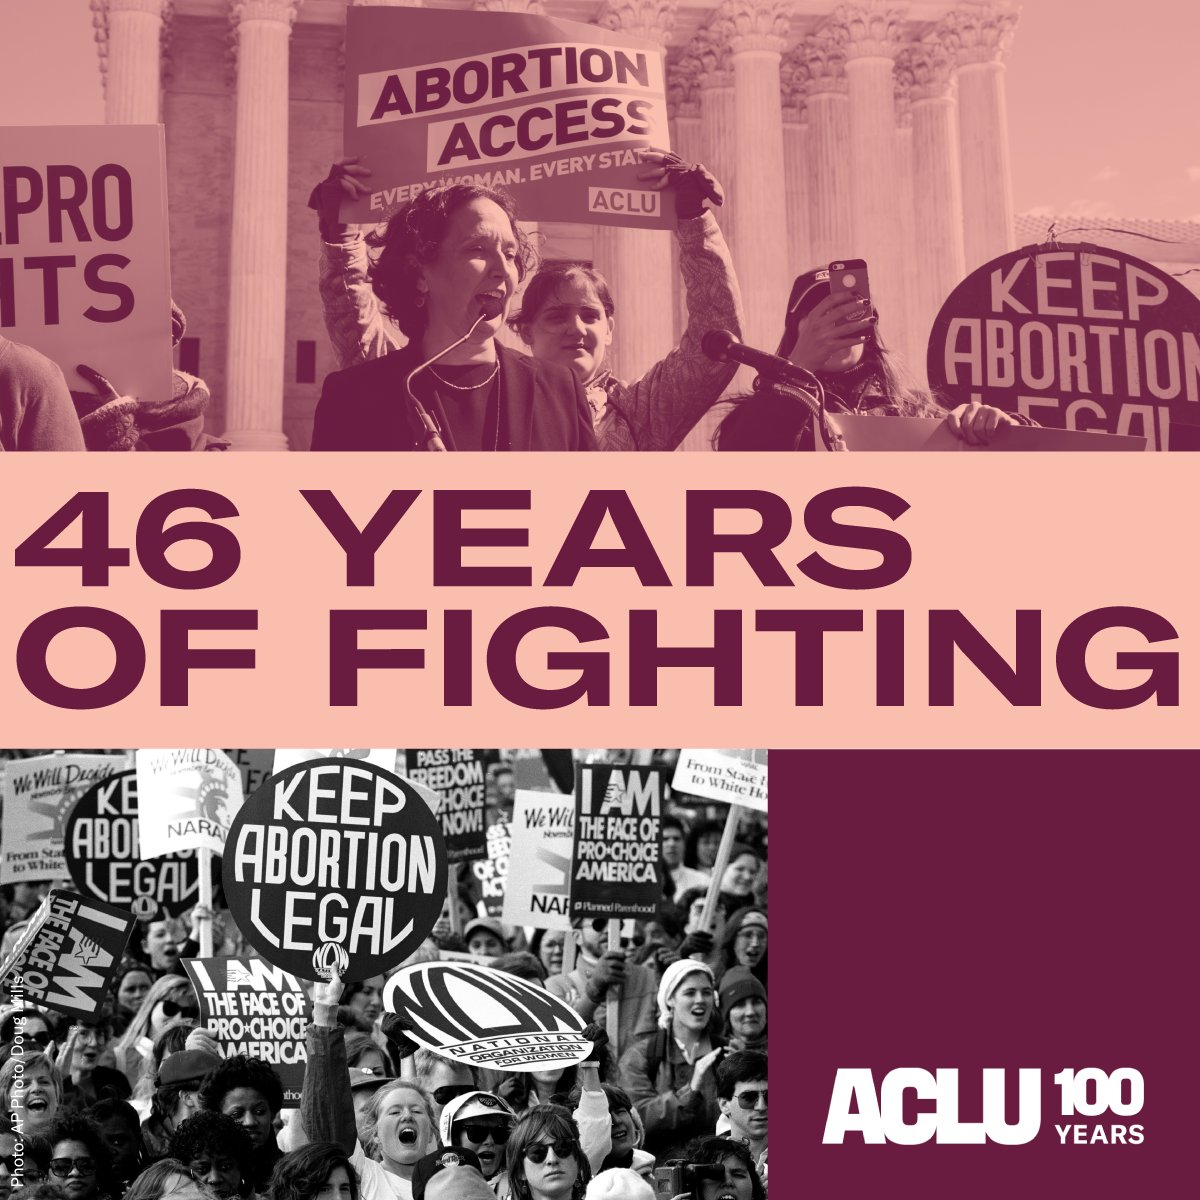 Today we reflect on 46 years of abortion rights, thanks to Roe v. Wade.  Reproductive freedom — including whether or not to become a parent — is a basic right and part of living a safe and healthy life.